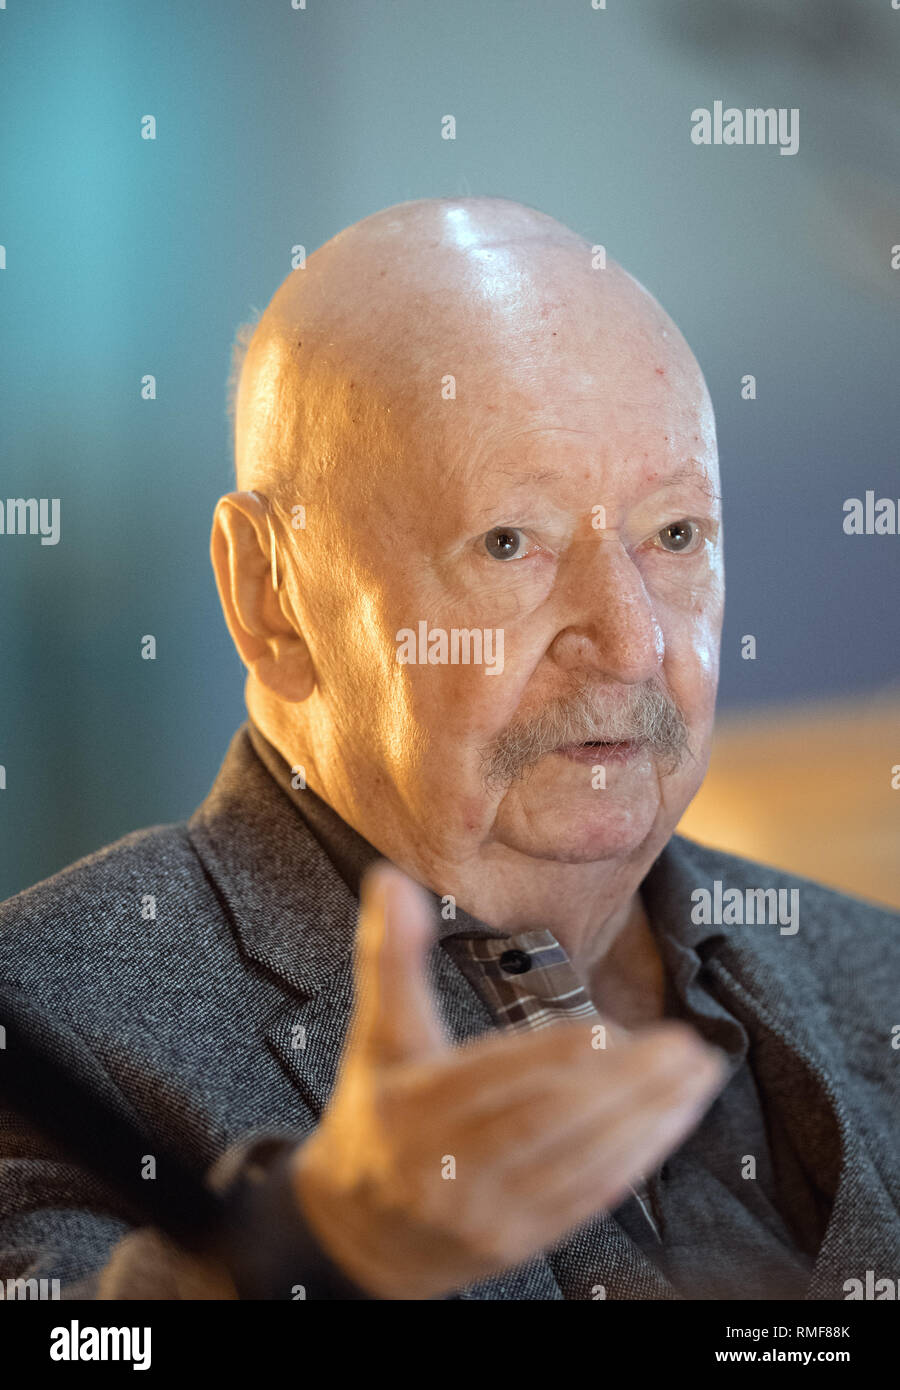 Berlin, Germany. 14th Feb, 2019. Writer Günter Kunert talks about his book 'Die zweite Frau' (The Second Woman), which has now been published by Wallenstein-Verlag, in the Schleswig-Holstein state representation. Kunert had written the novel almost 45 years ago, when he found the book unprintable in the GDR and had forgotten the manuscript in its hiding place. Credit: Soeren Stache/dpa/Alamy Live News - Stock Image